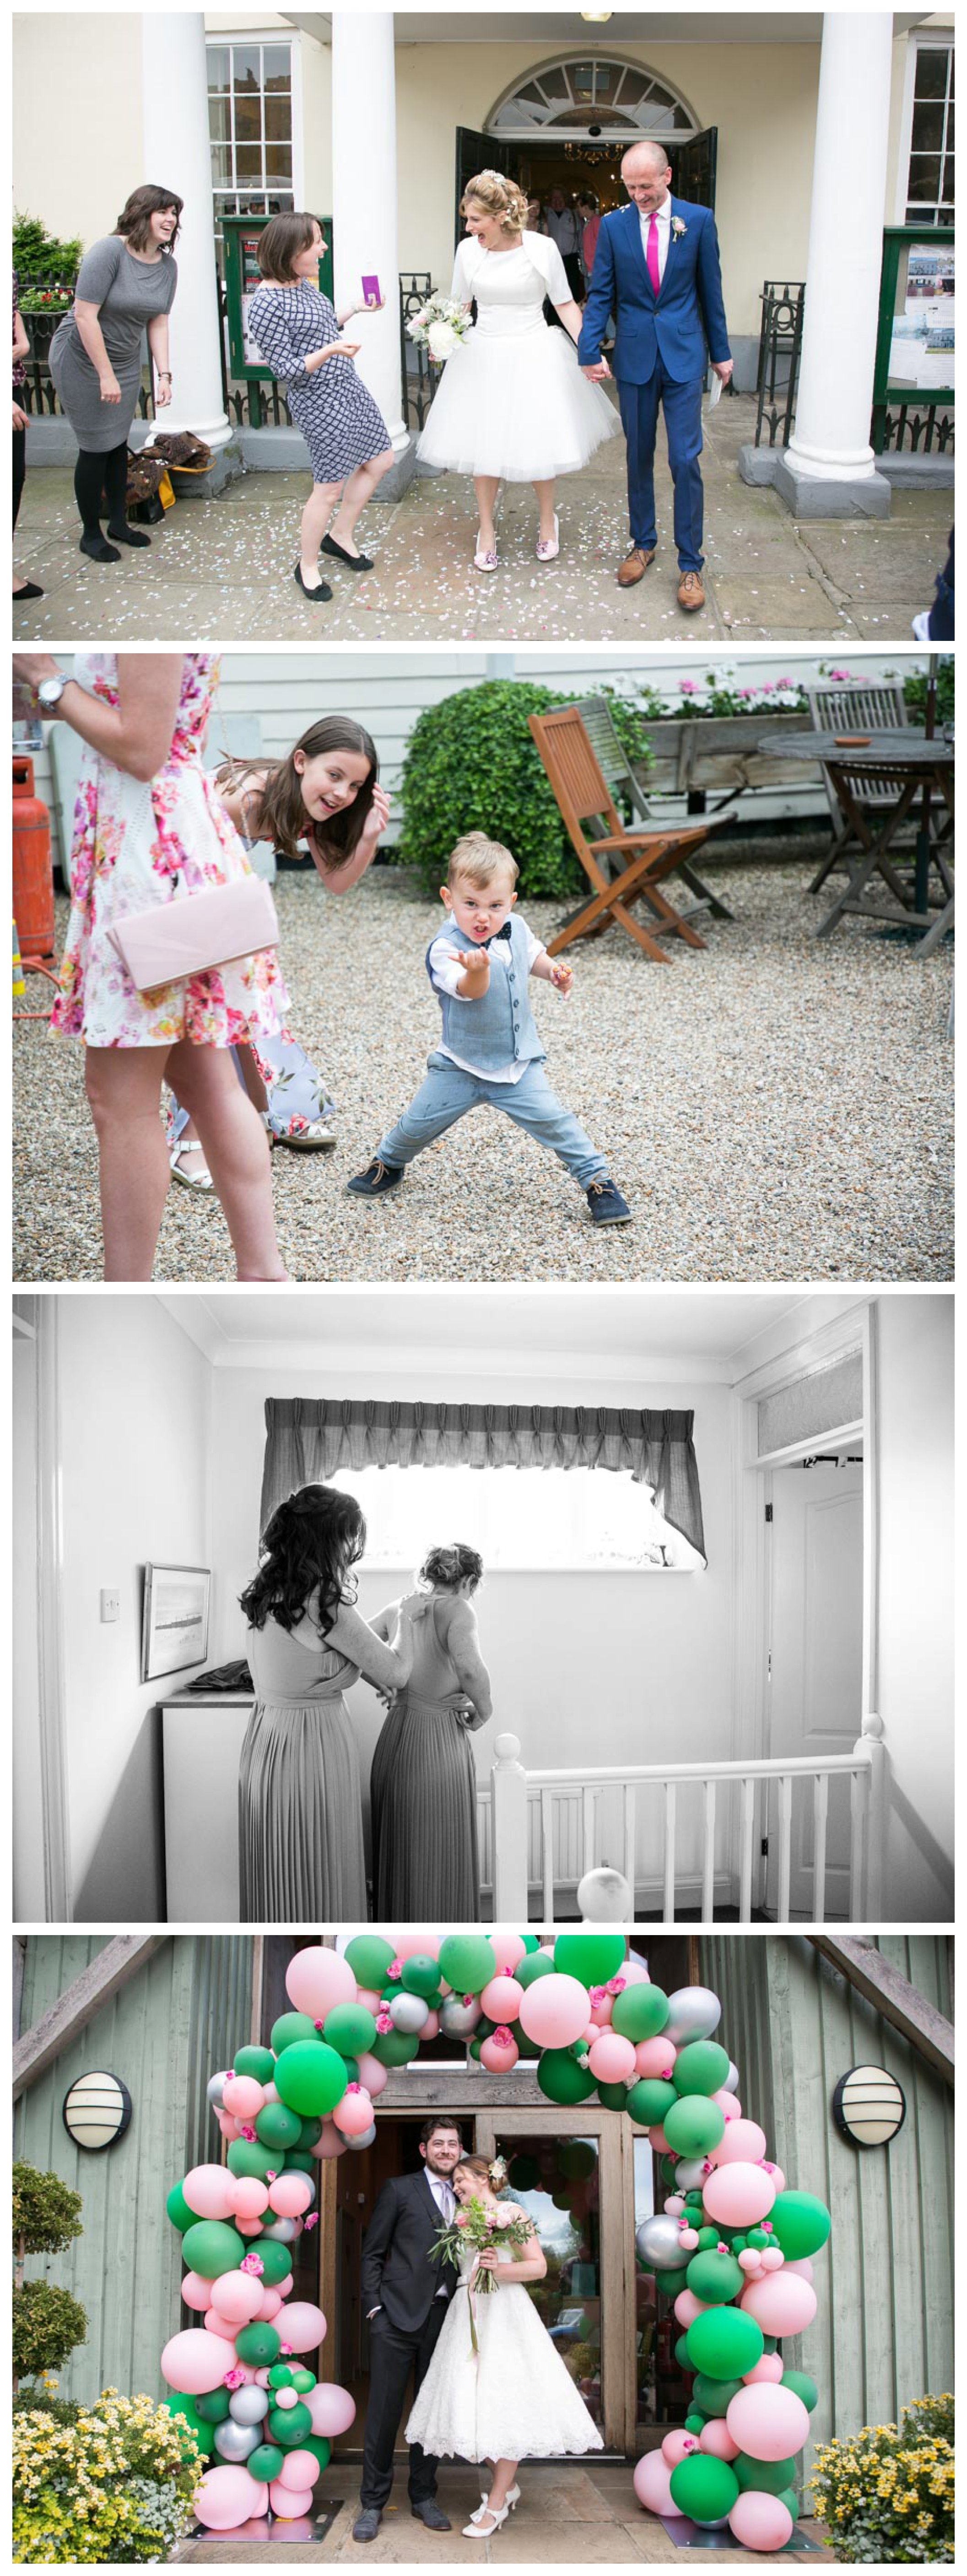 selection of wedding photography realxed and informal